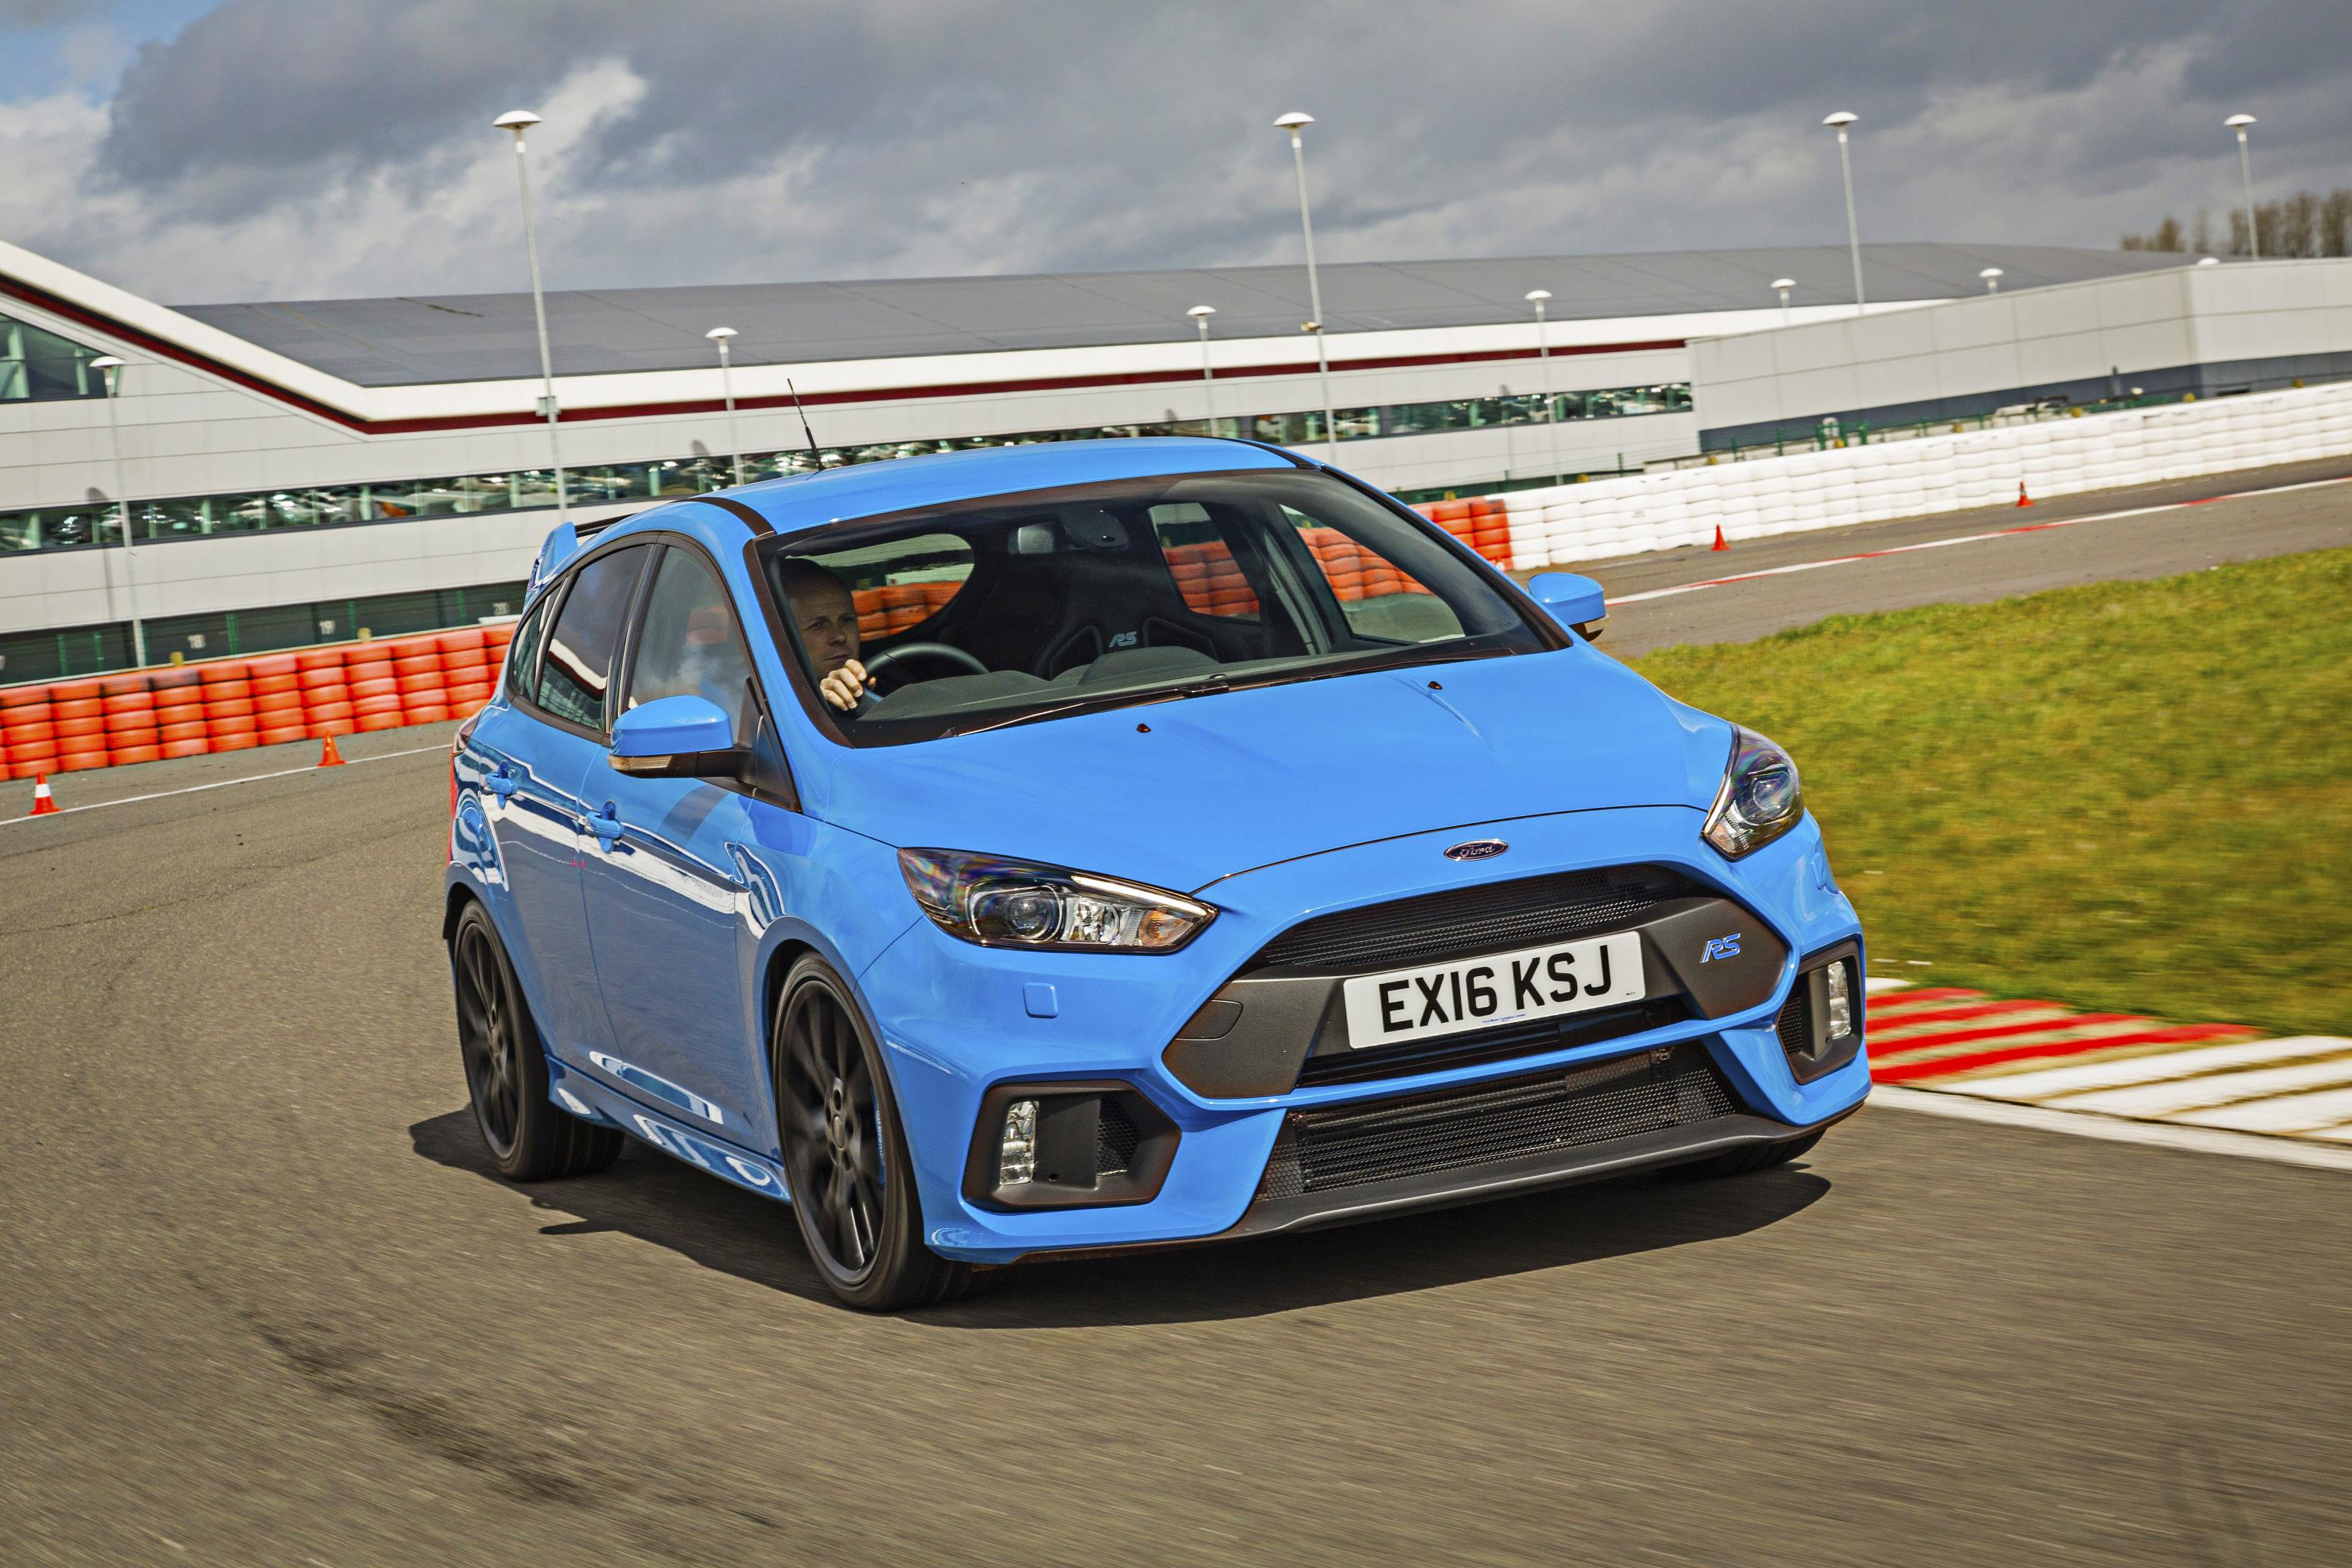 Ford Focus RS in blue